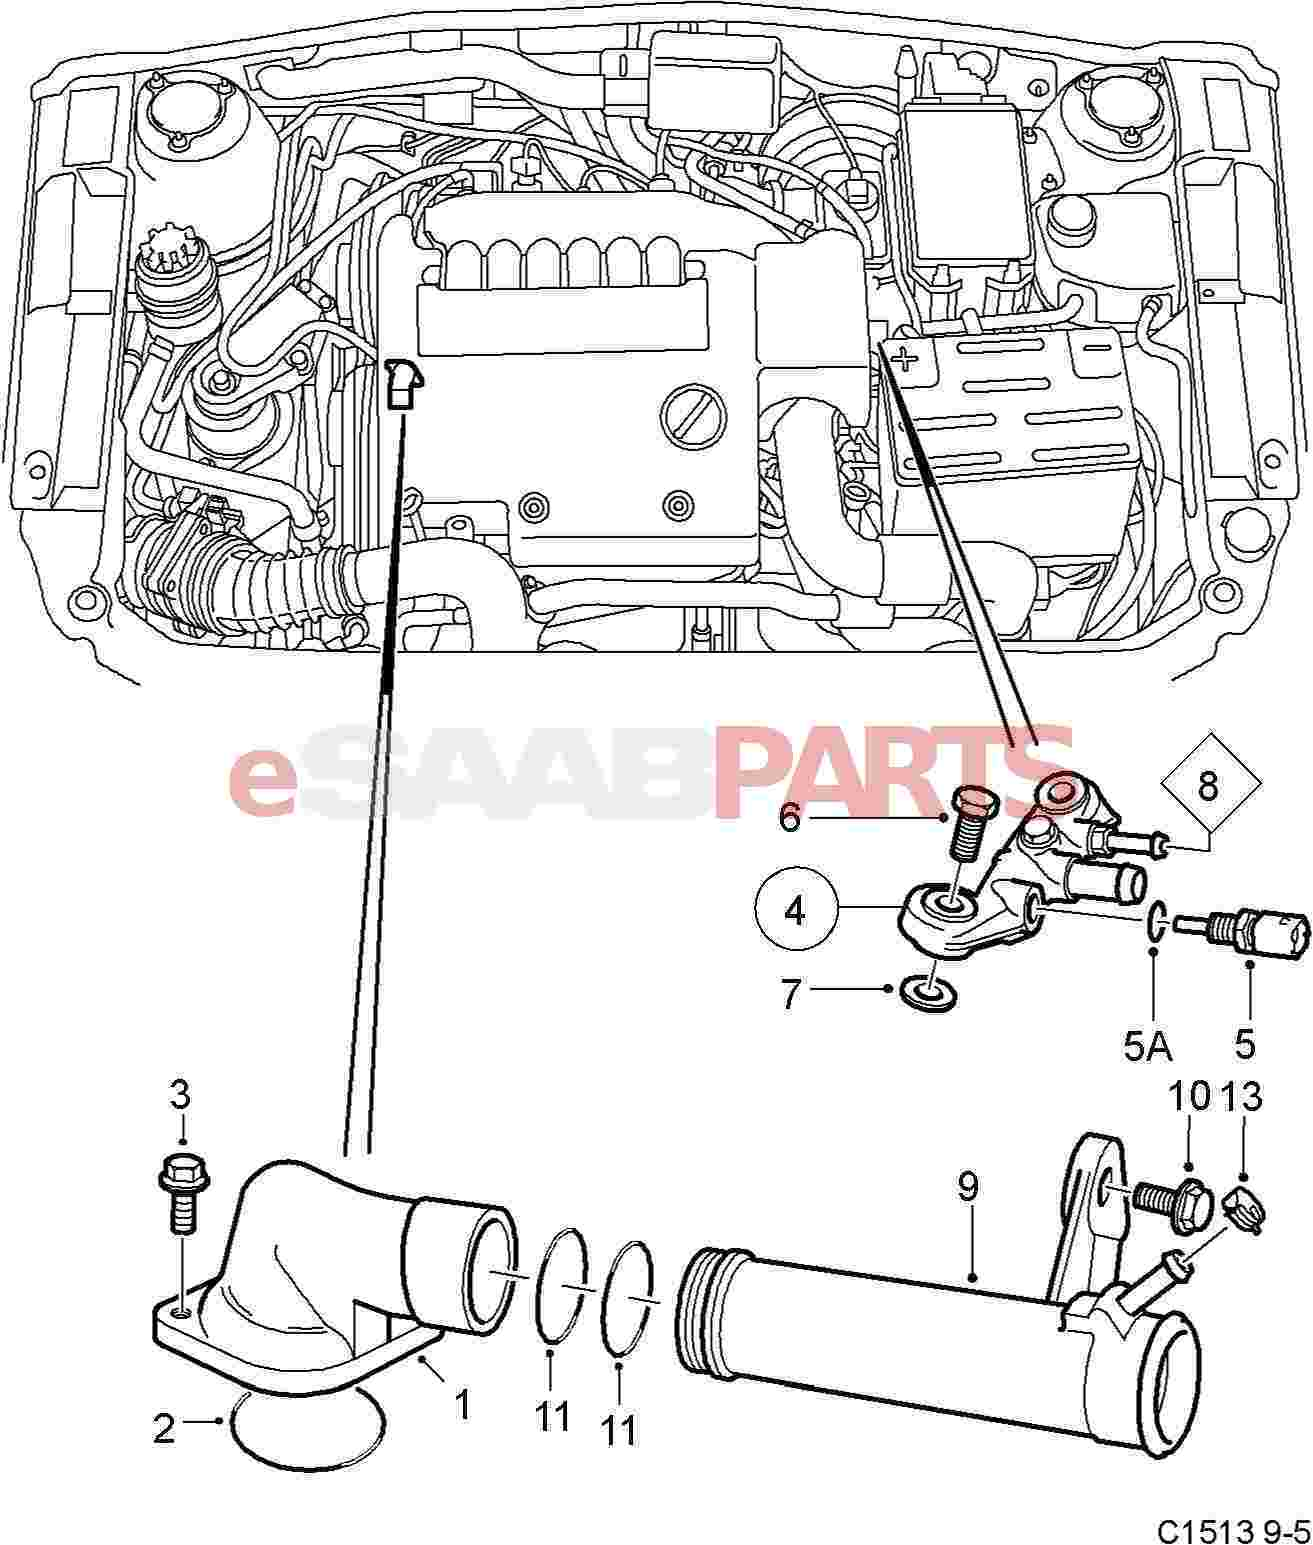 saab tube genuine saab parts from com diagram image 9